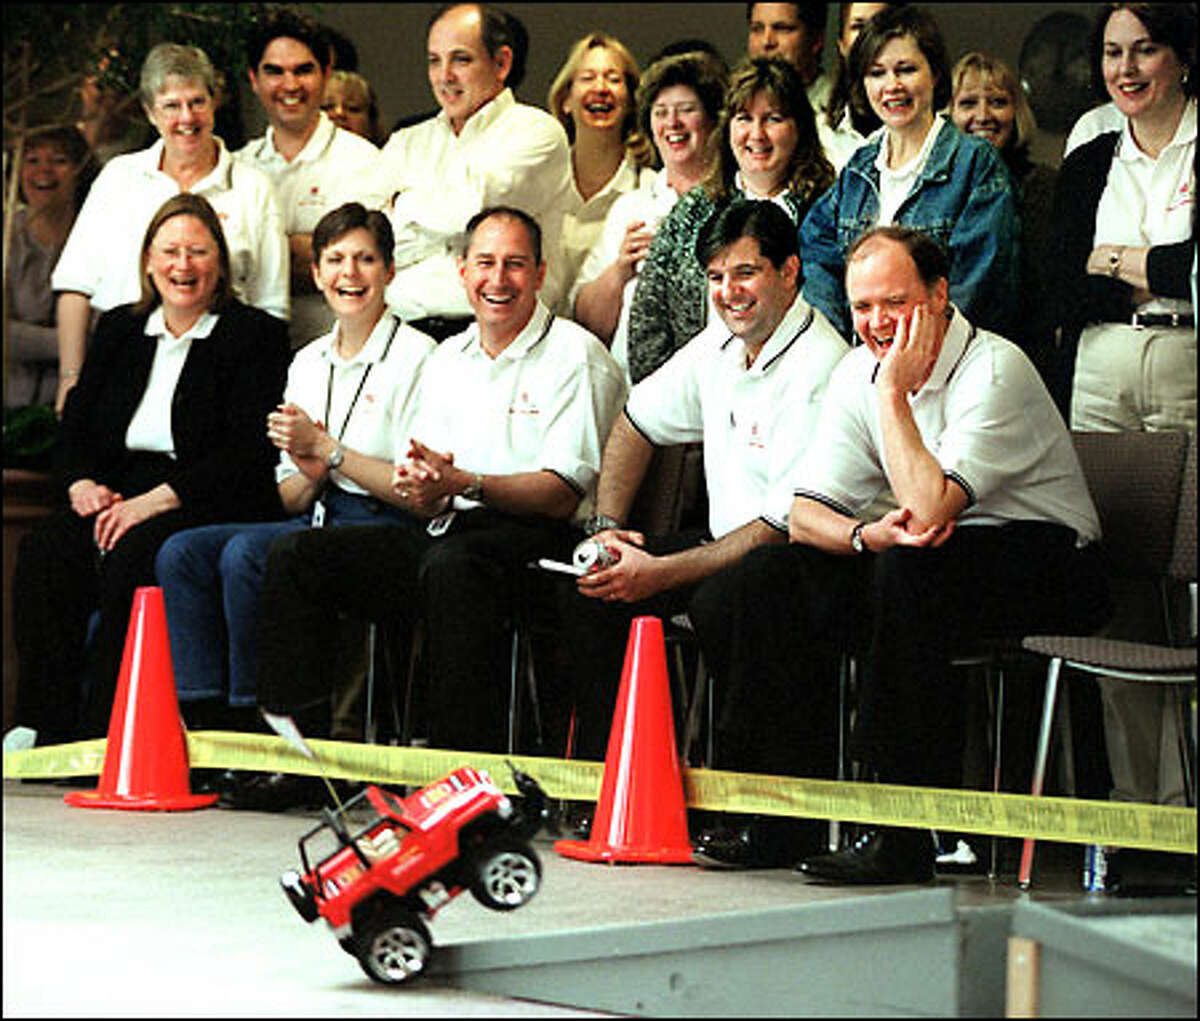 Mike McGavick, Safeco's president and CEO, seated at right, laughs with a group of employees as they watch a remote-controlled model-jeep race.